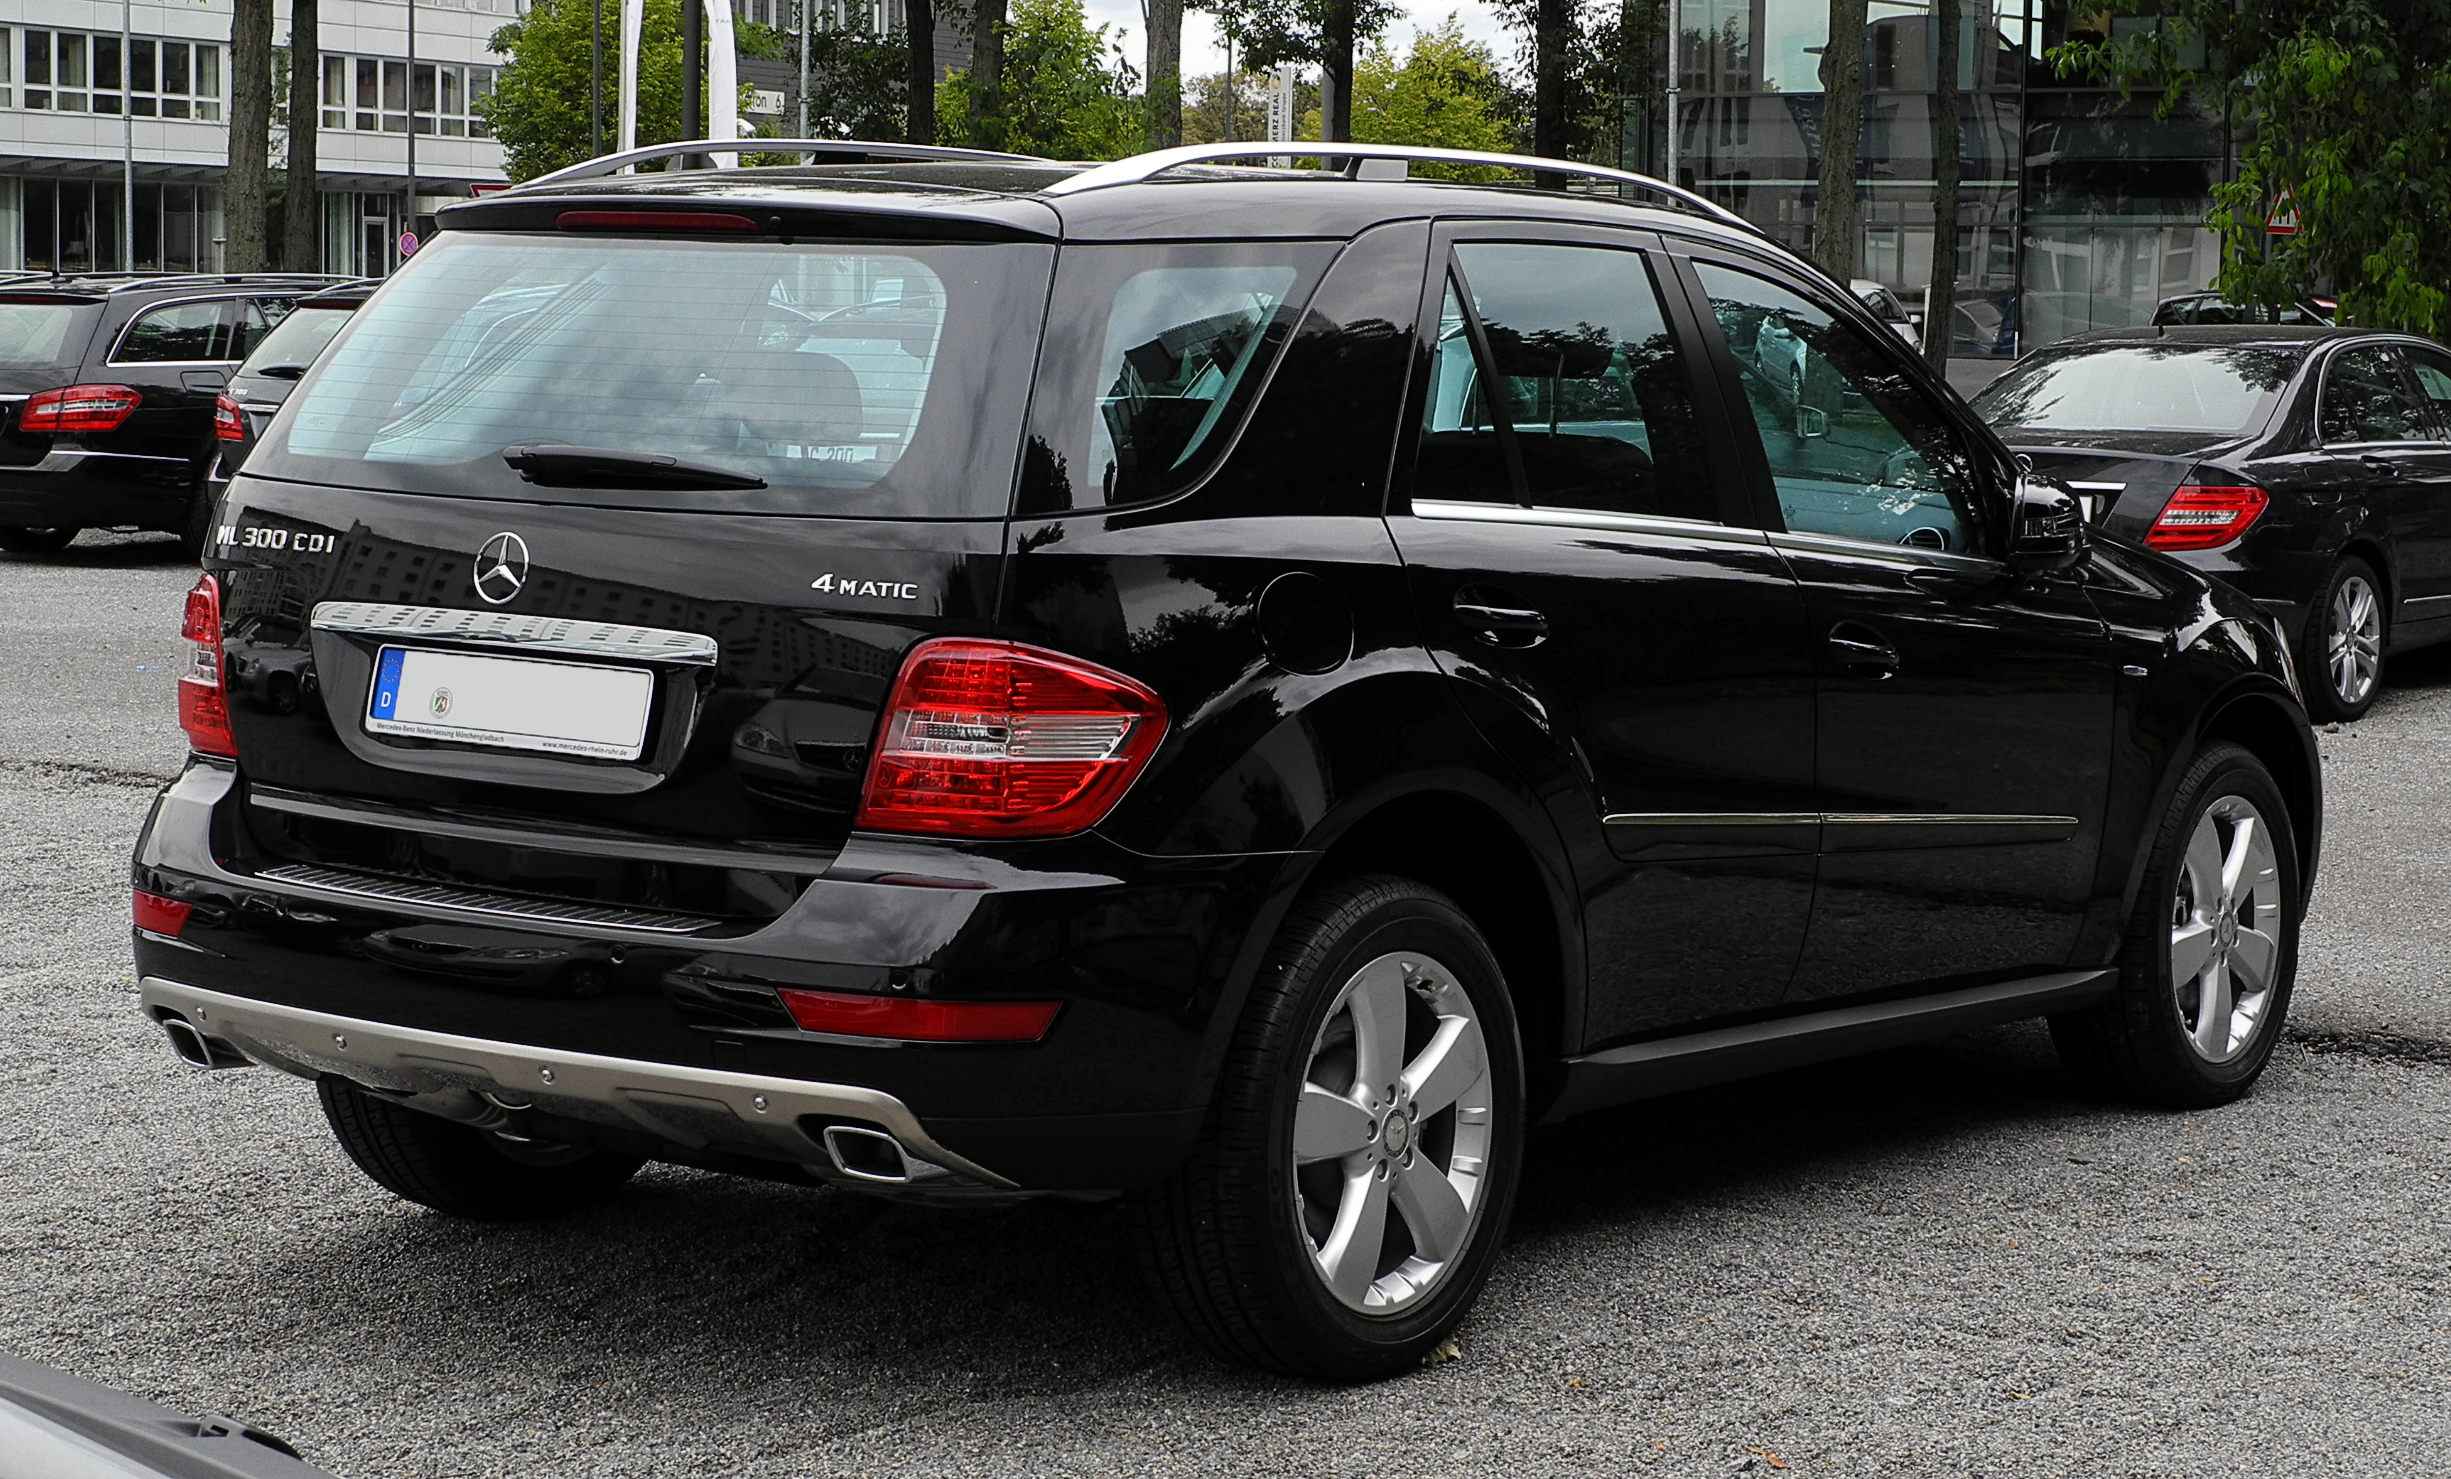 Mercedes Benz Ml 300 Cdi 4matic Blueefficiency Picture 6